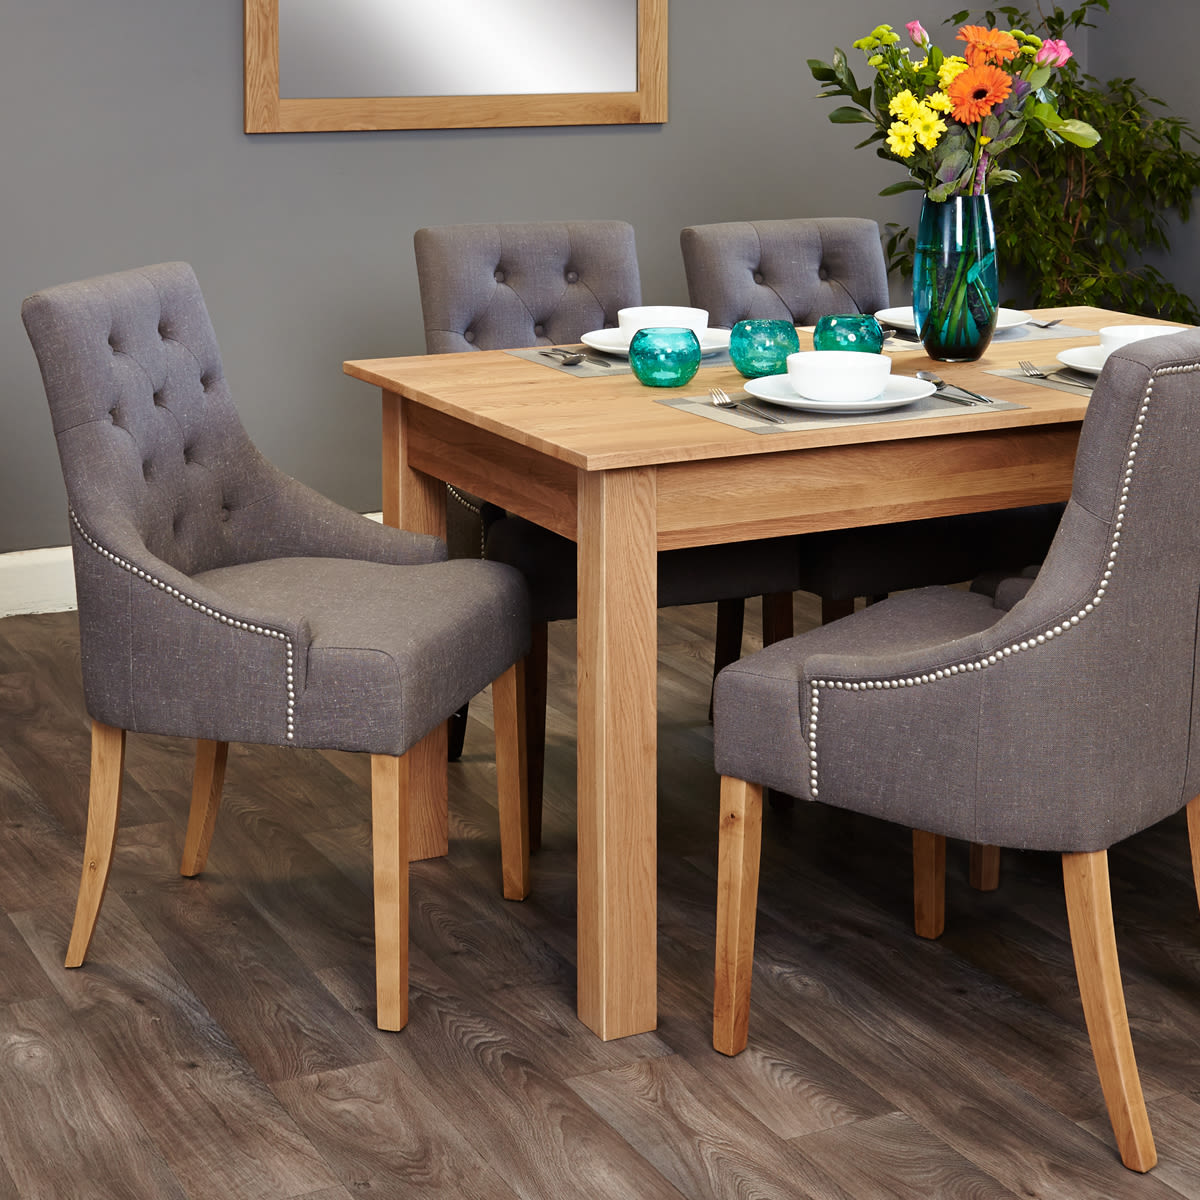 mobel oak 4 6 seat table and 6 grey chairs with arms was 1 199 00 now 999 00 wooden furniture store